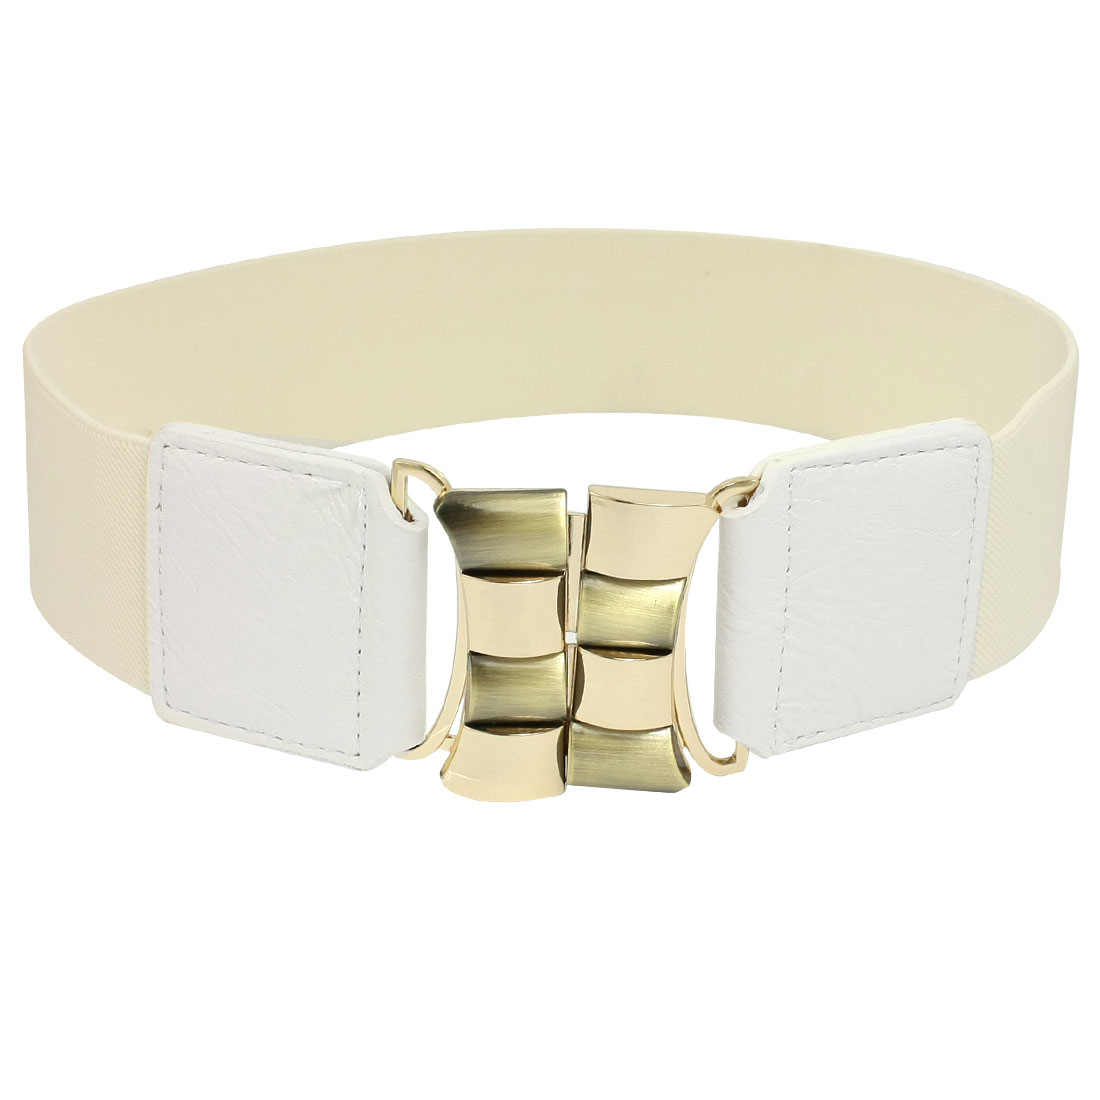 White 5cm Wide Cinch Metal Interlocking Buckle Waist Belt for Ladies